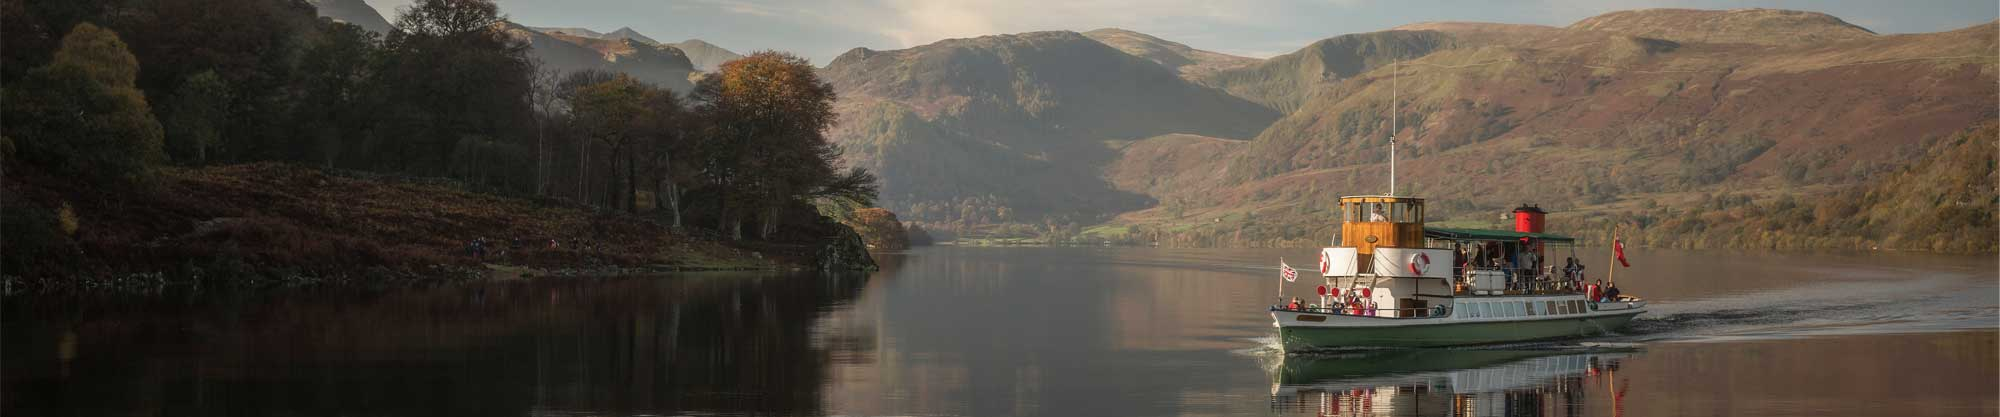 ullswater-website-header